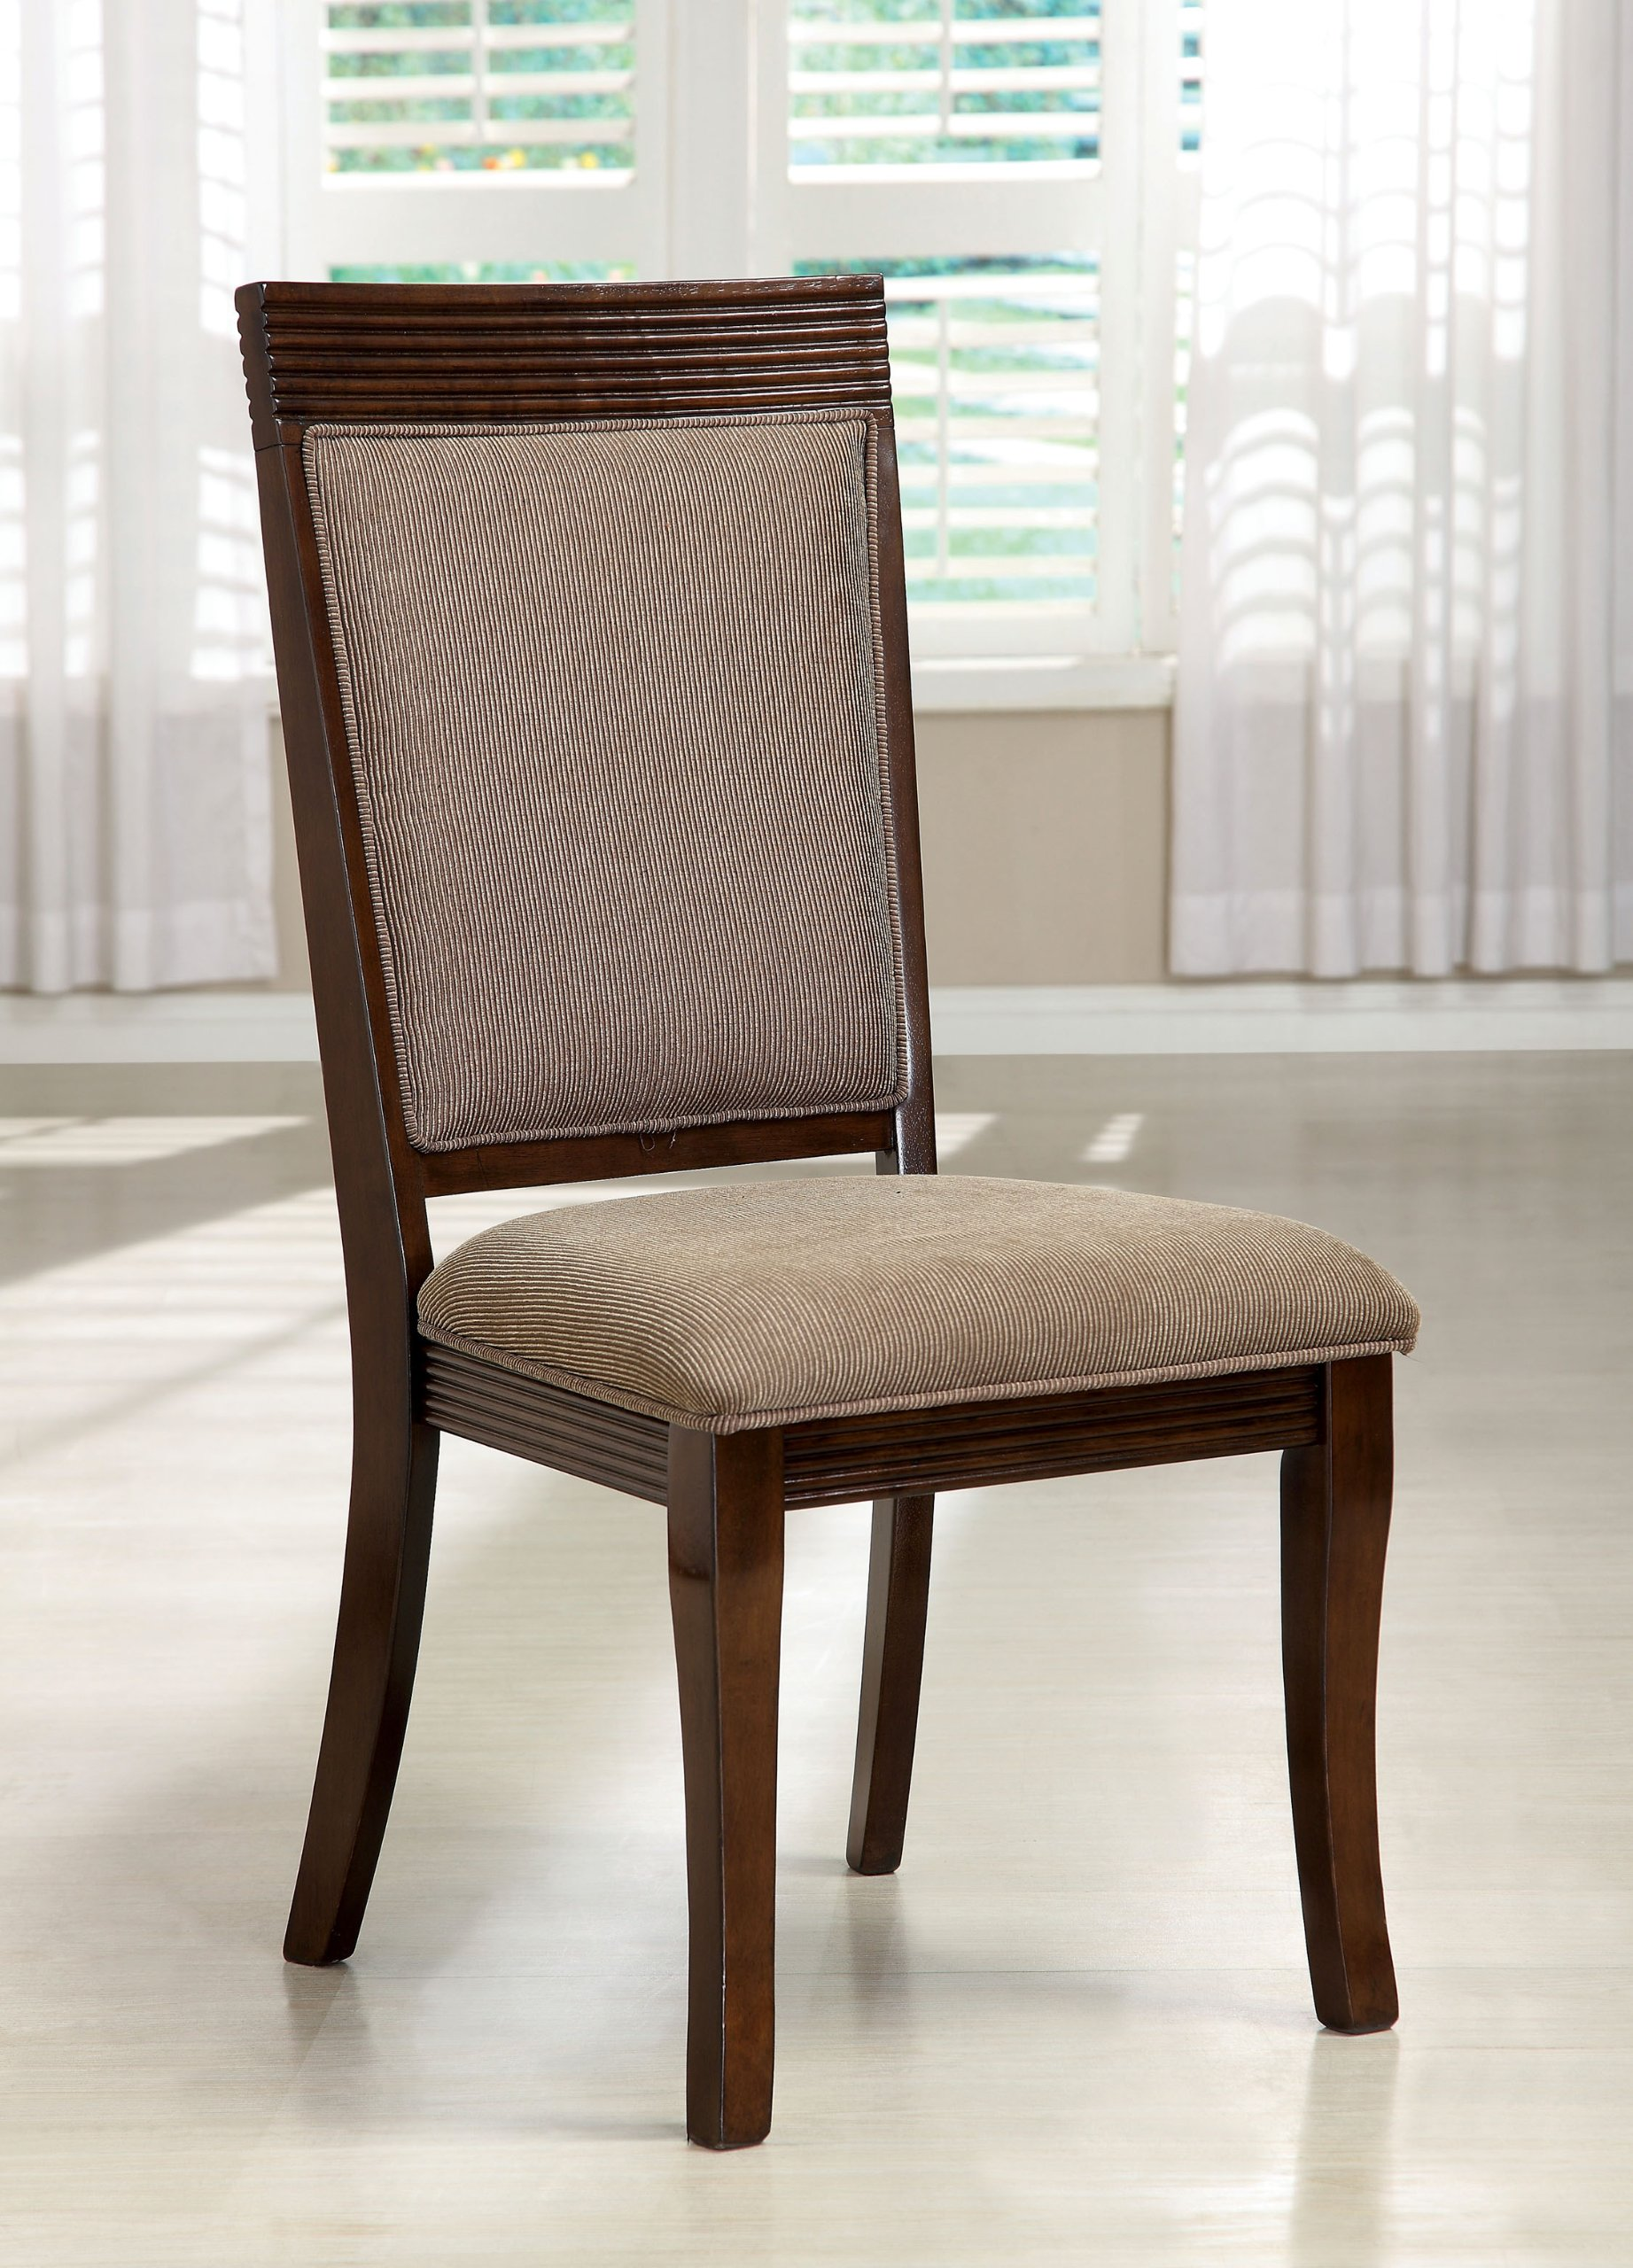 Furniture of America Aiken Formal Padded Fabric Side Chair, Walnut Finish, Set of 2 by Furniture of America (Image #2)